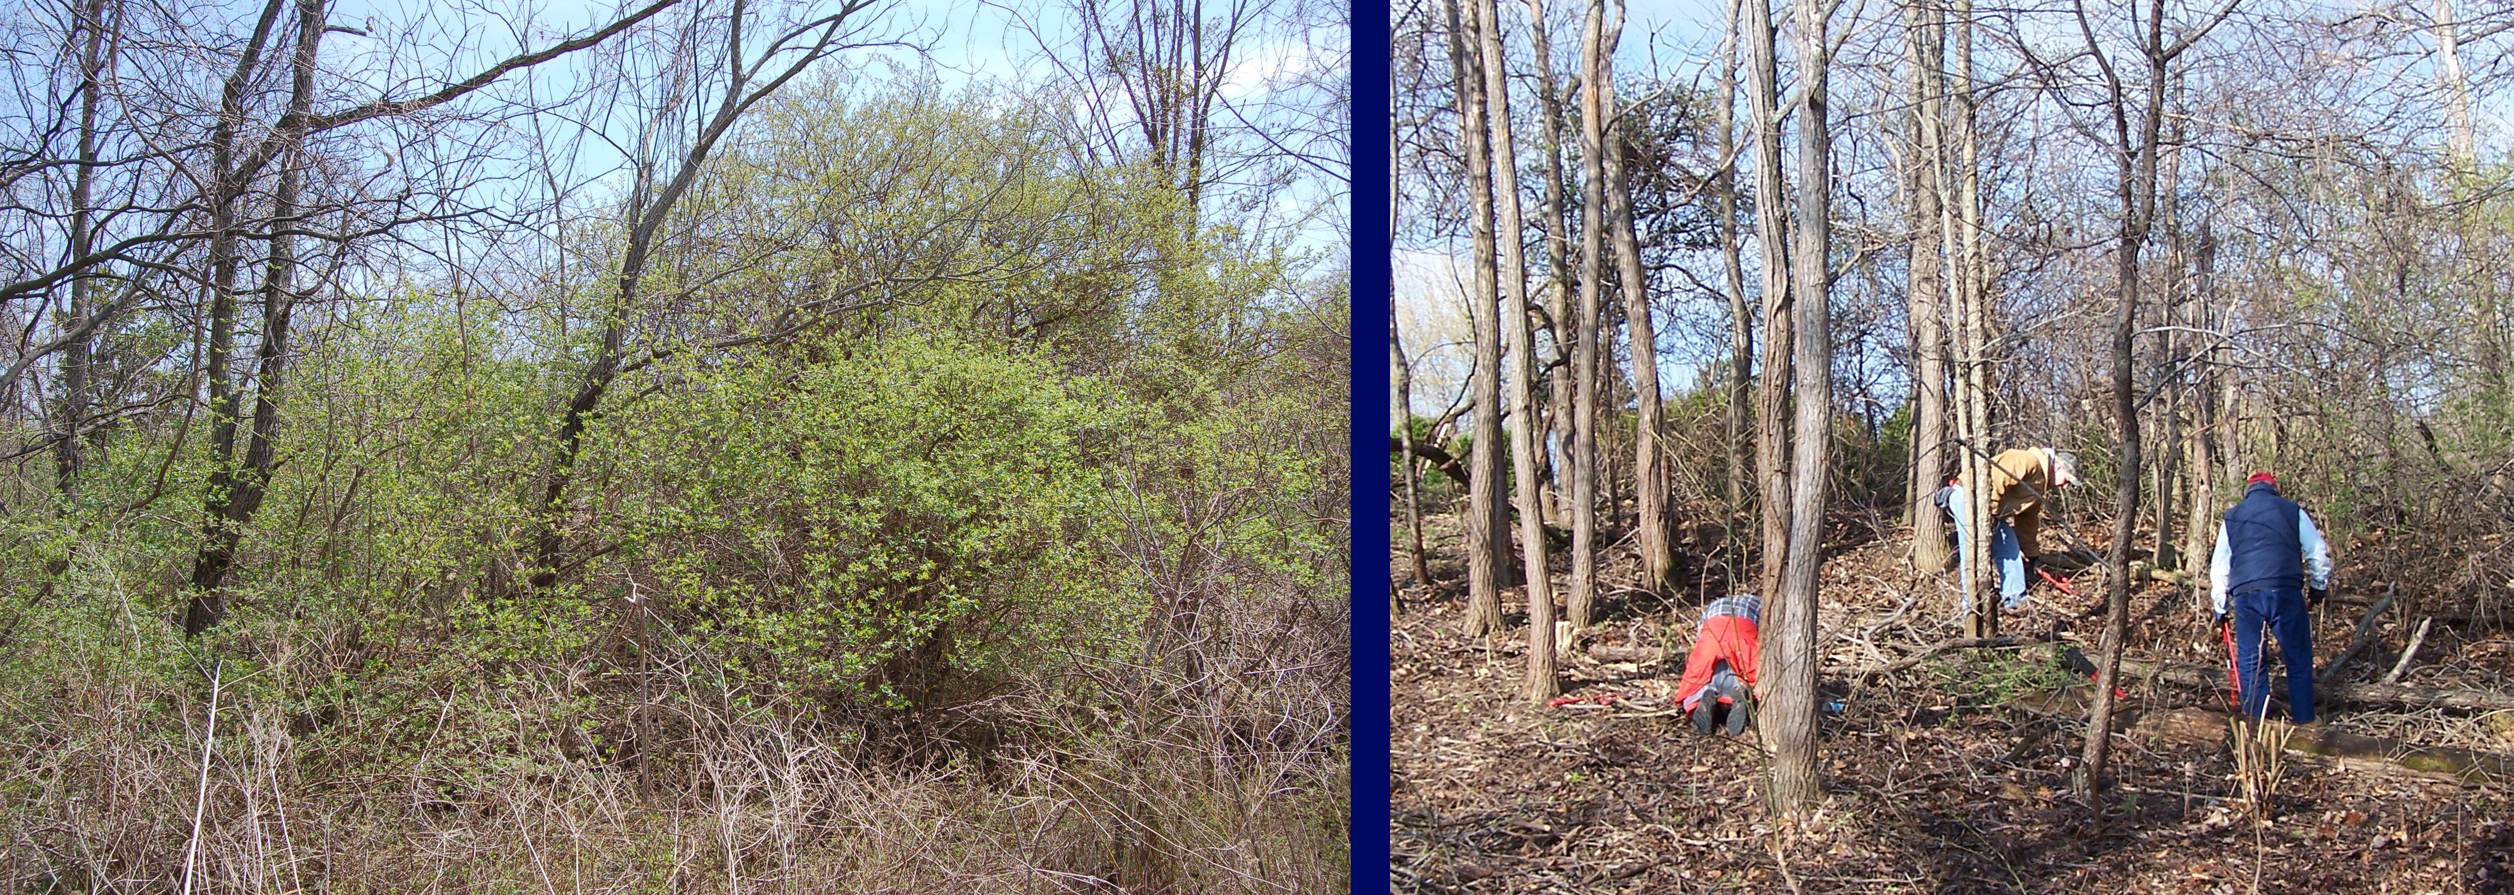 Before And After Invasive Removal